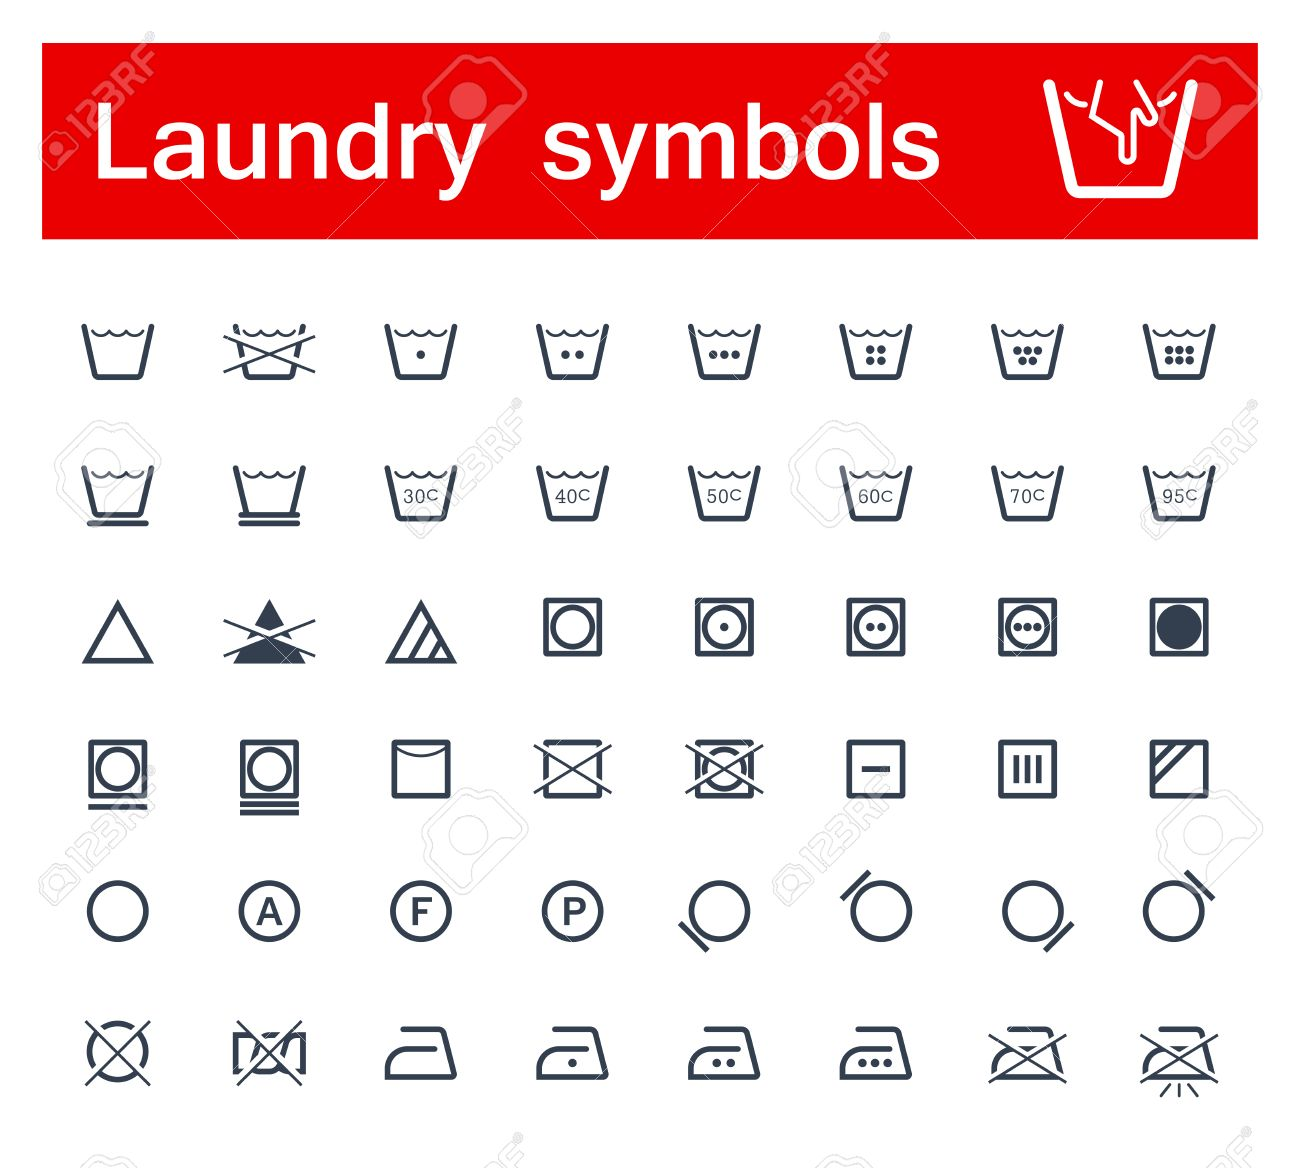 Laundry Symbols Royalty Free Cliparts Vectors And Stock